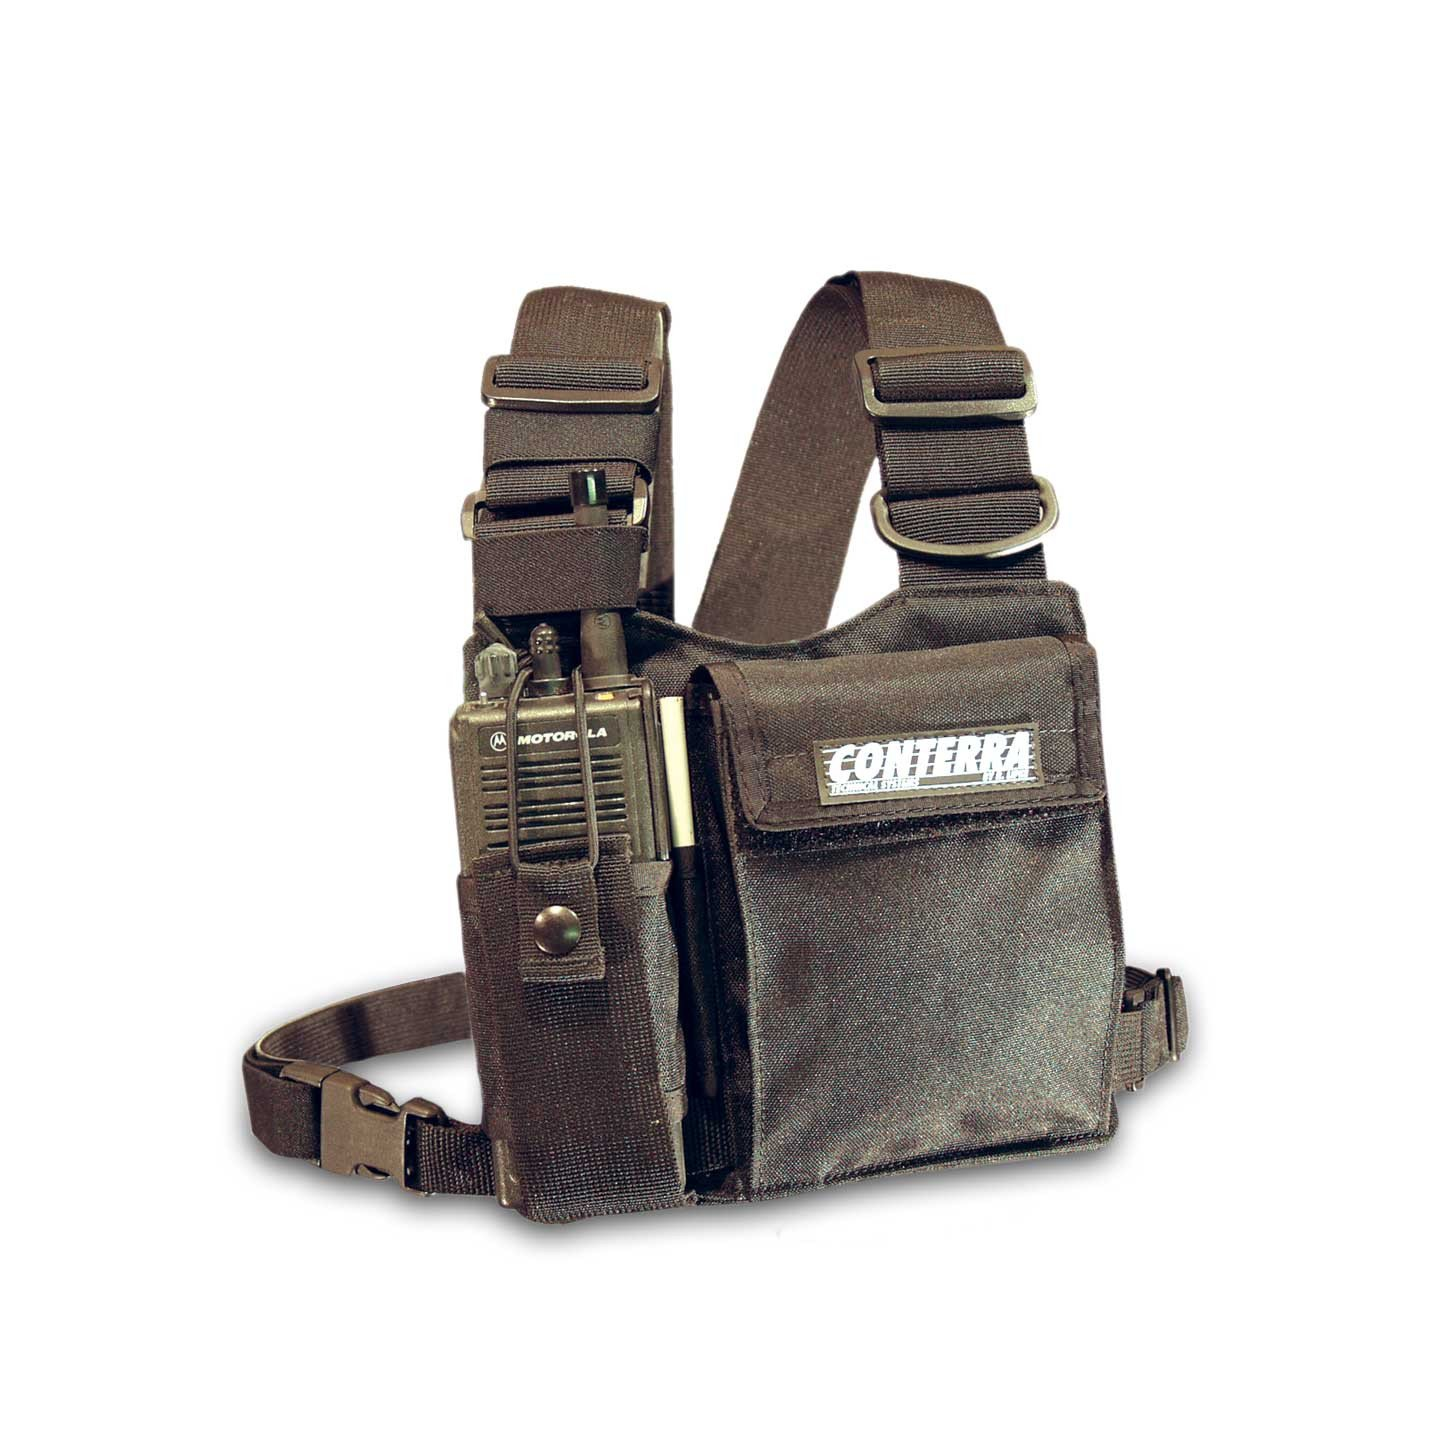 Conterra Adjusta-Pro Radio Chest Harness (LIMITED STOCK)